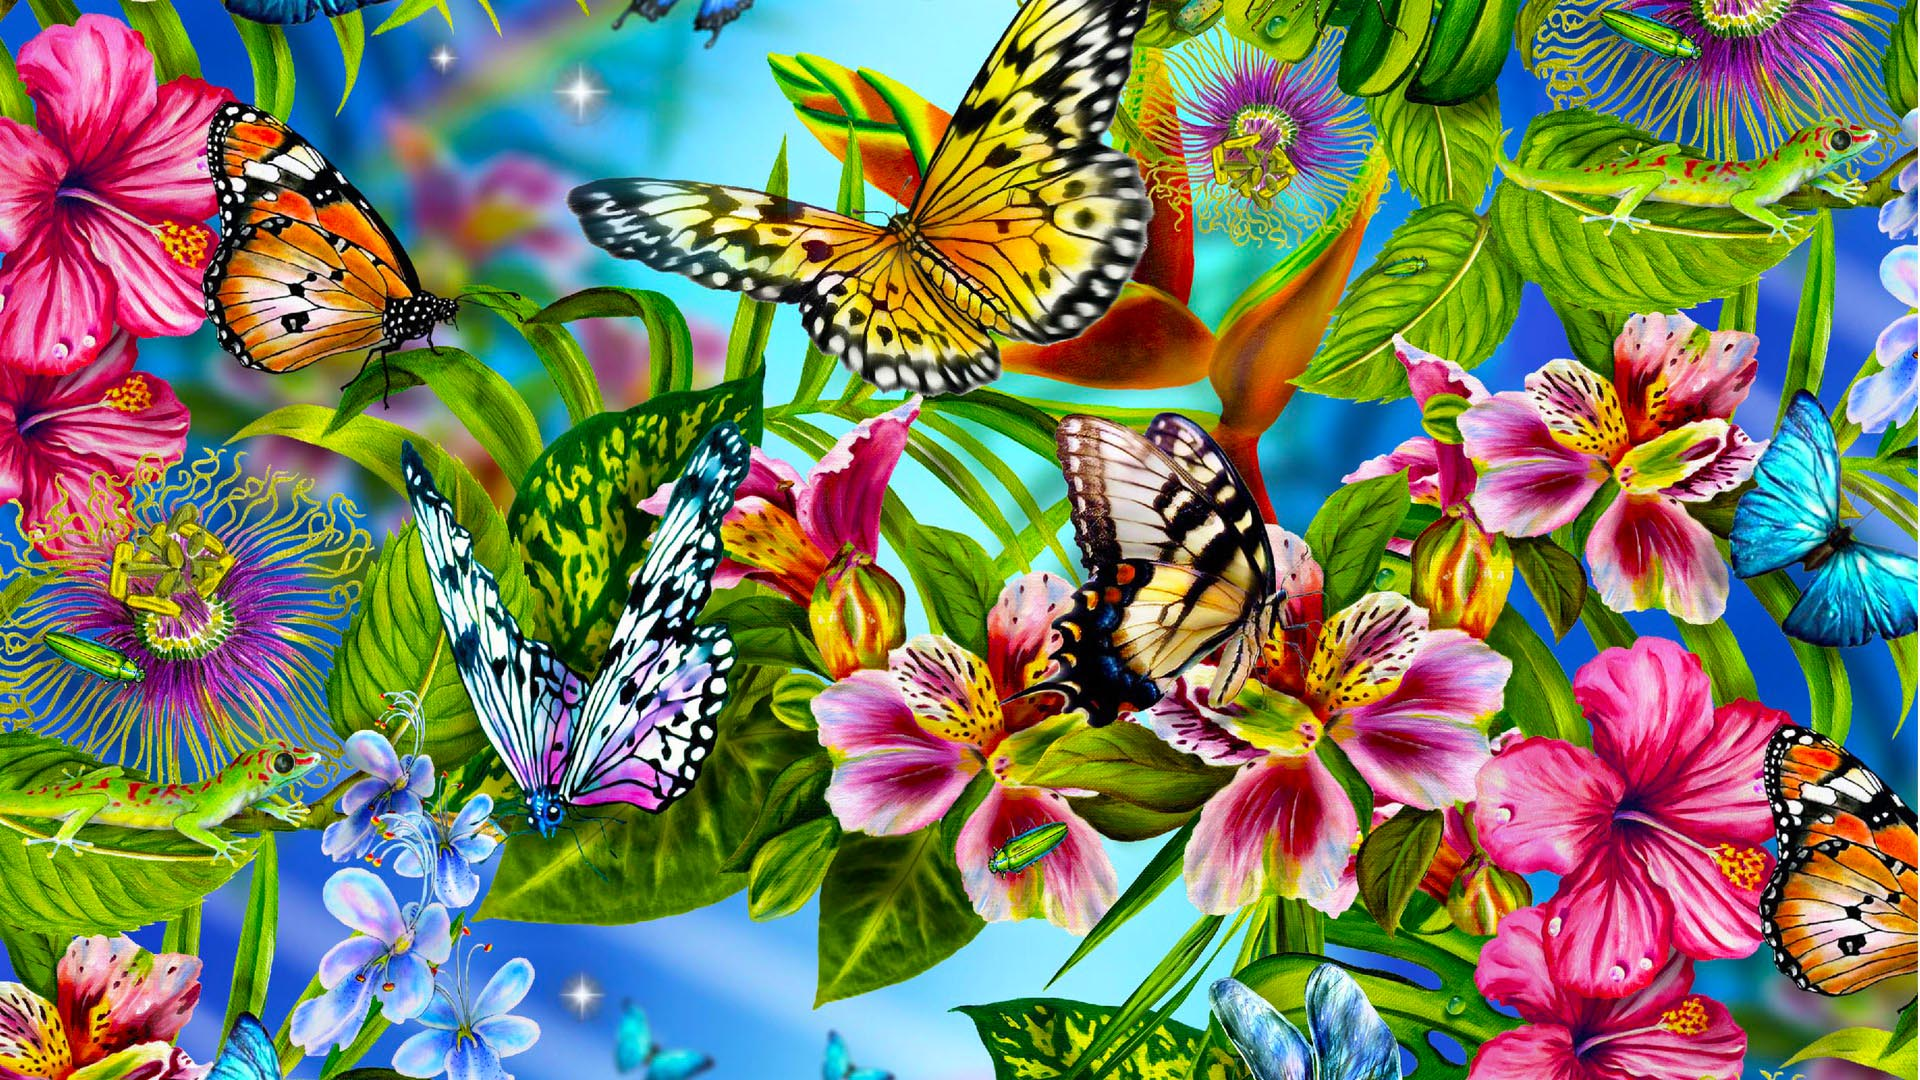 Download images of flowers and butterflies clip art free download 17 Best images about Beautiful Wallpapers and Images on Pinterest ... clip art free download